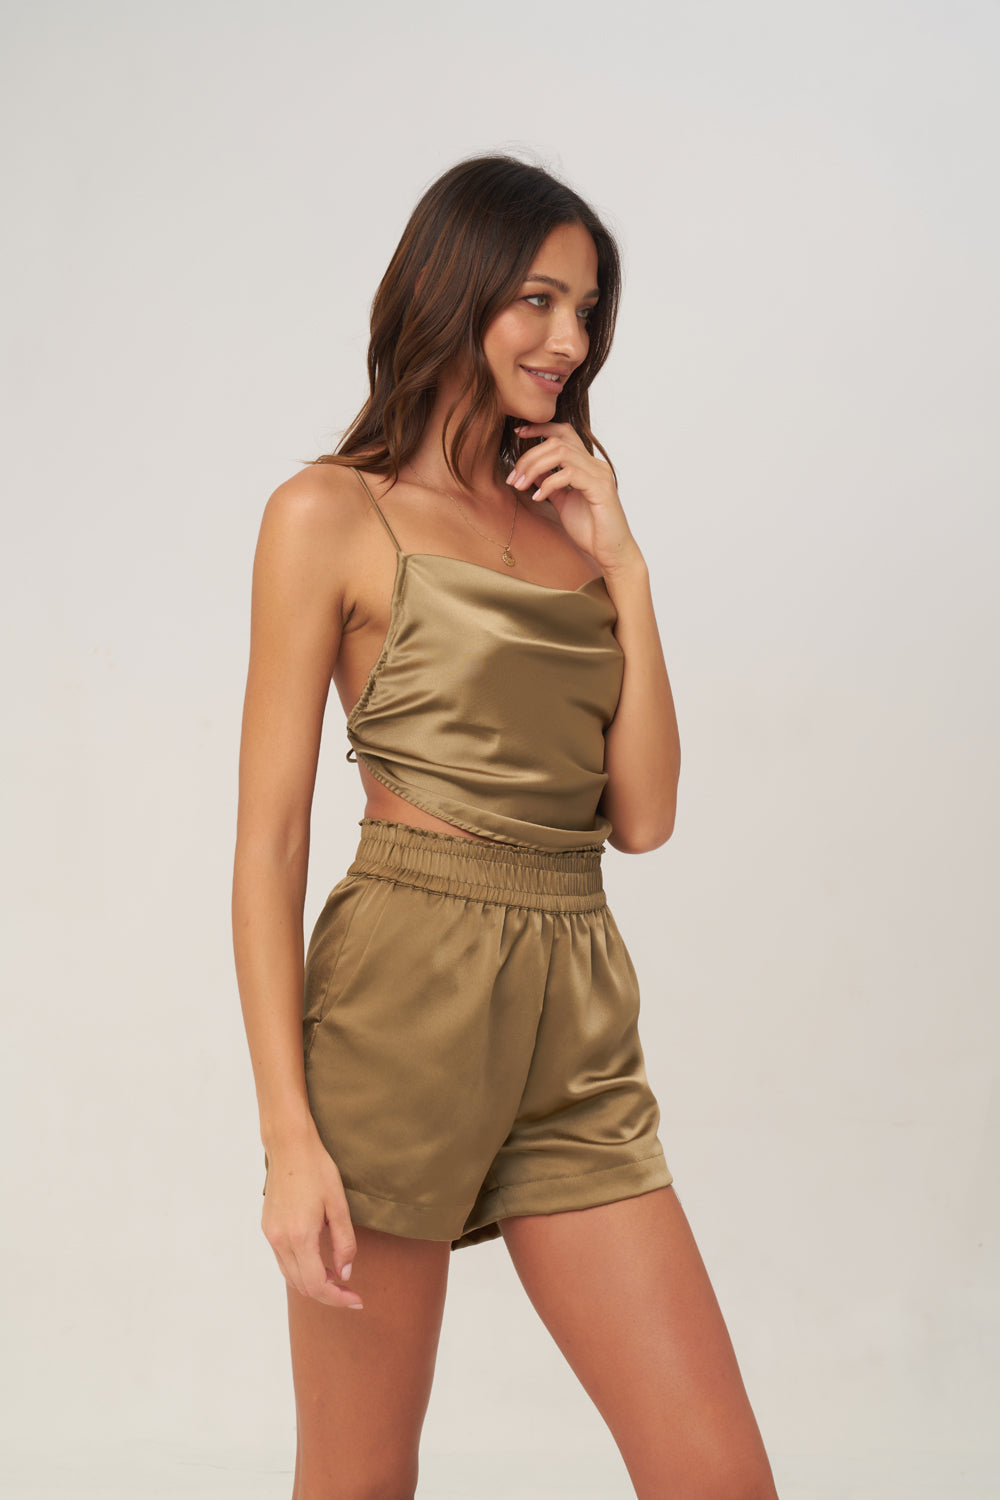 La Confection - Harlow - Top in Olive